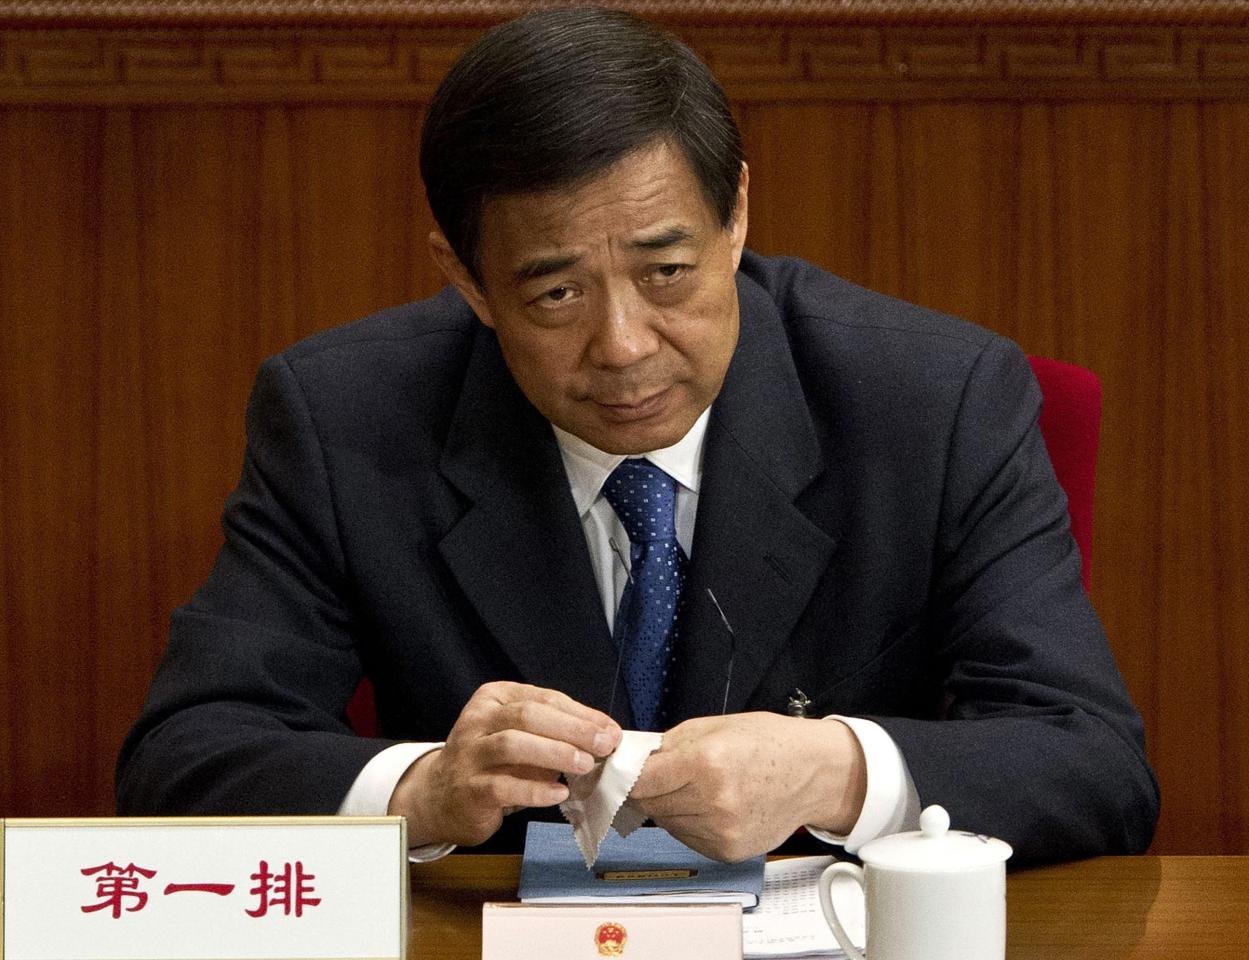 FILE - In this March 11, 2012 file photo, then Chongqing party secretary Bo Xilai attends a plenary session of the National People's Congress at the Great Hall of the People in Beijing. Bo's wife Gu Kailai who is accused of murdering Bo family associate Neil Heywood went on trial Thursday, Aug. 9, 2012 at the Hefei Intermediate People's Court in eastern China. Bo was already in the Communist Party's 25-member Politburo and before the scandal was seen as a contender for the nine-member Standing Committee that runs China. (AP Photo/Andy Wong, File)